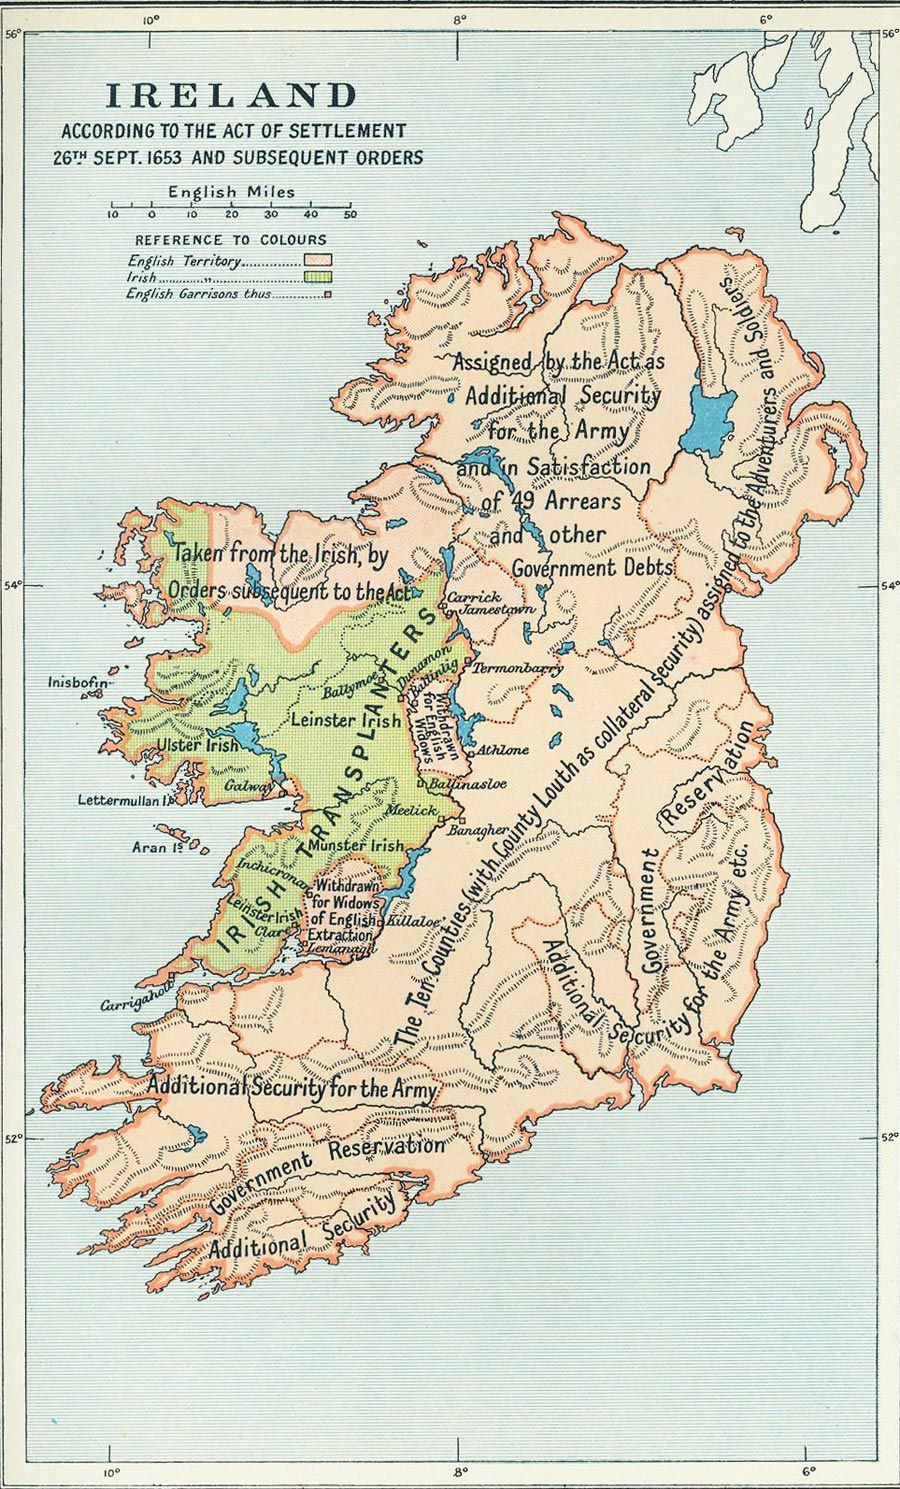 Map Of Southern Ireland Counties.Map Of Ireland After The Settlement Act Of 1653 Maps Ireland Map